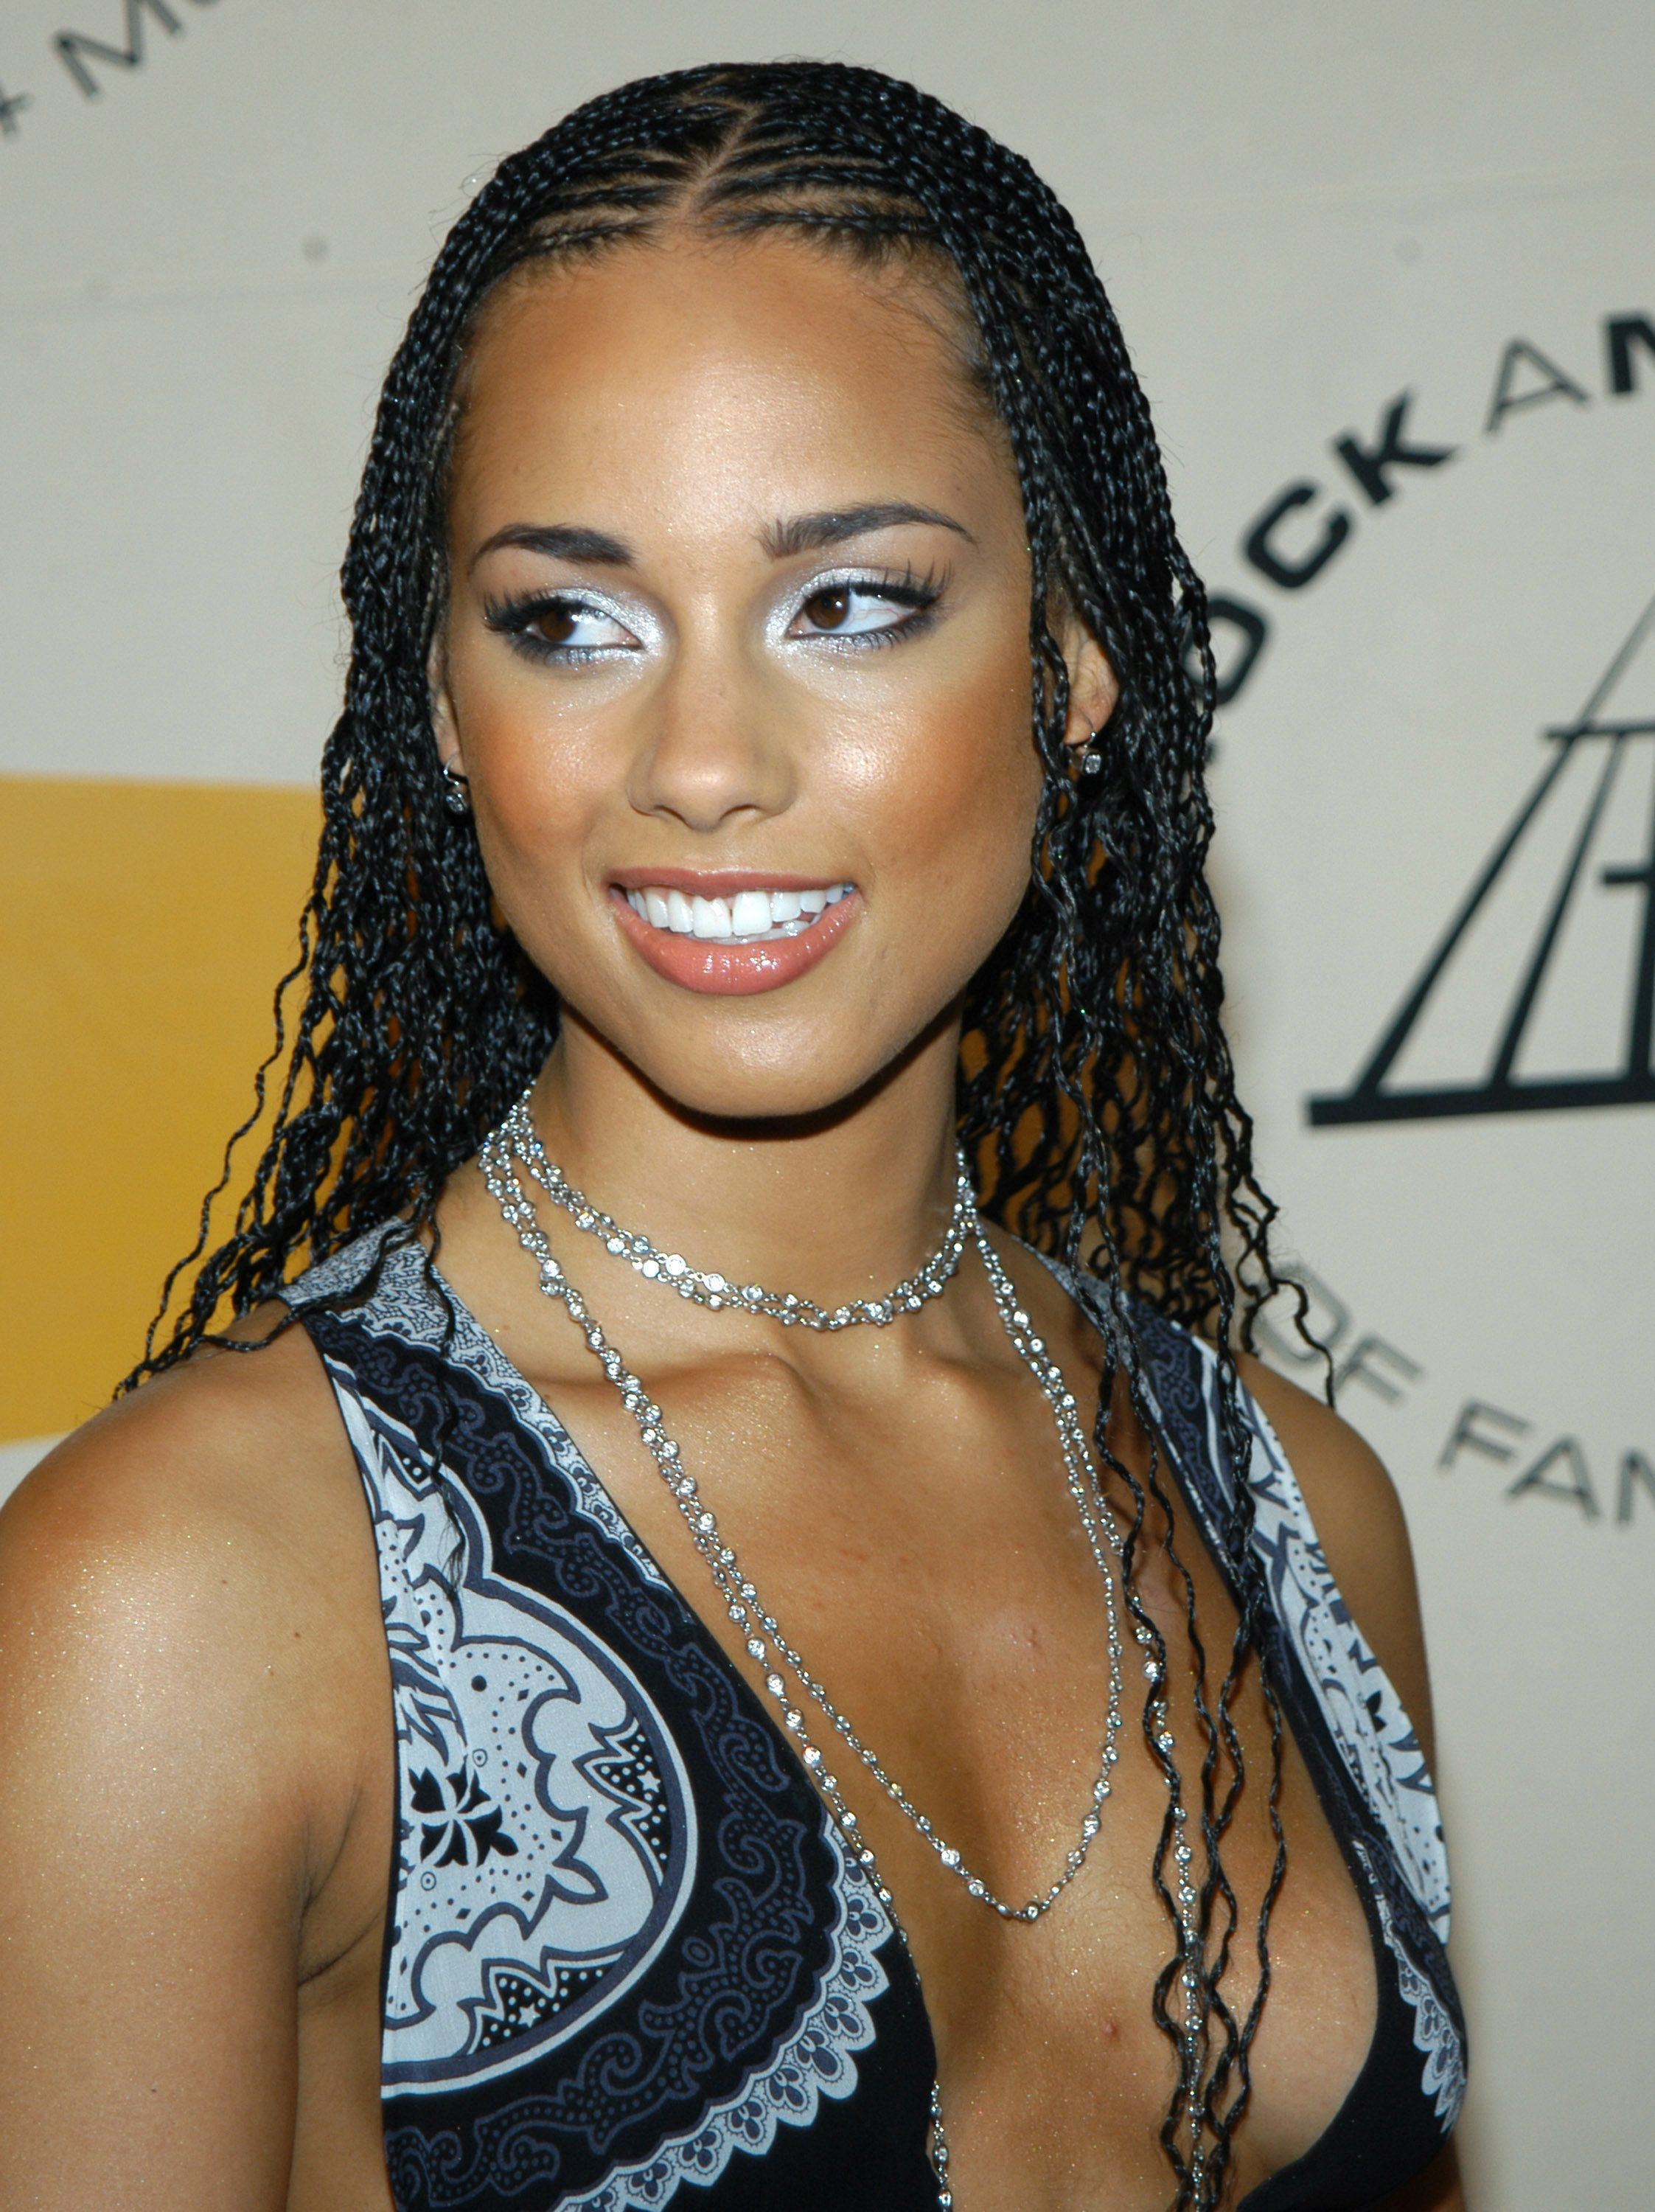 Alicia Keys during The 19th Annual Rock and Roll Hall of Fame Induction Ceremony - Arrivals at Waldorf Astoria in New York City, New York, United States. (Photo by Stephen Lovekin/FilmMagic)